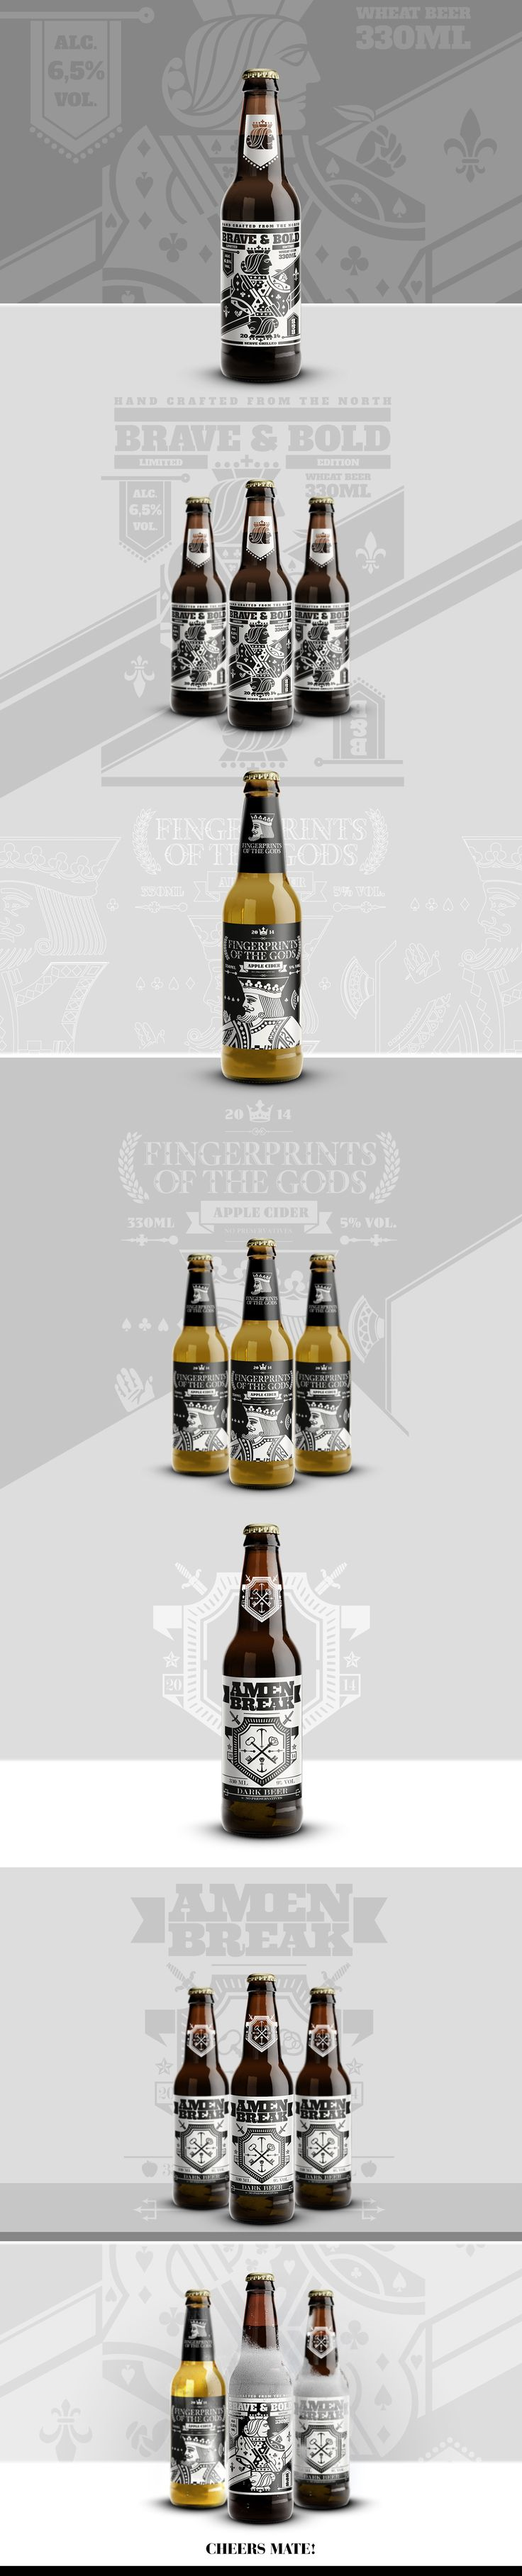 Beverage packaging design, 2014. Personal project